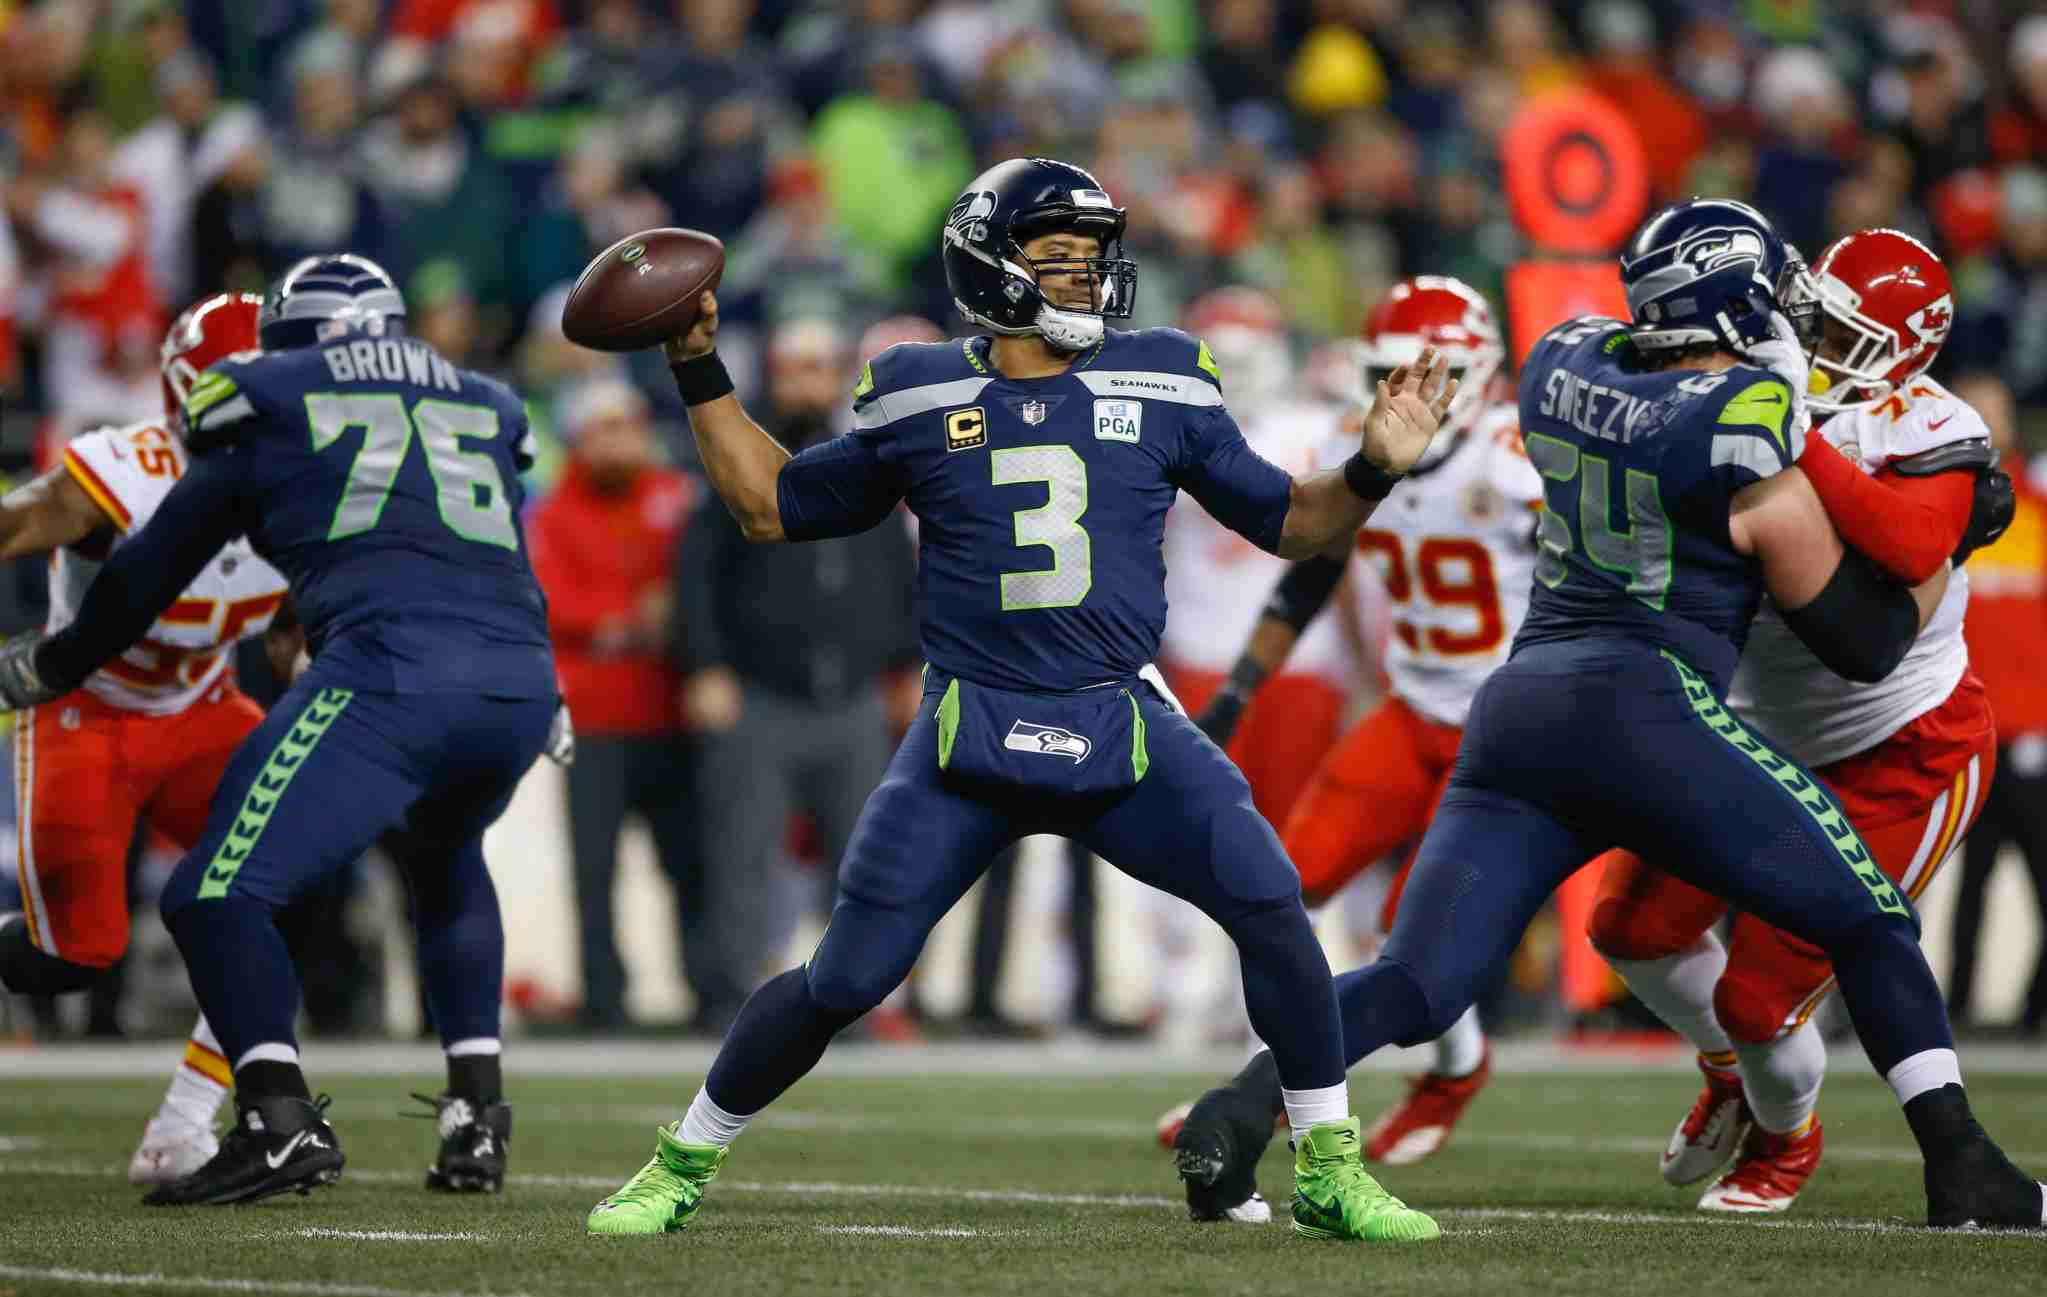 Russel Wilson during a game against the Kansas City Chiefs. (Image by Otto Greule Jr/Getty Images)